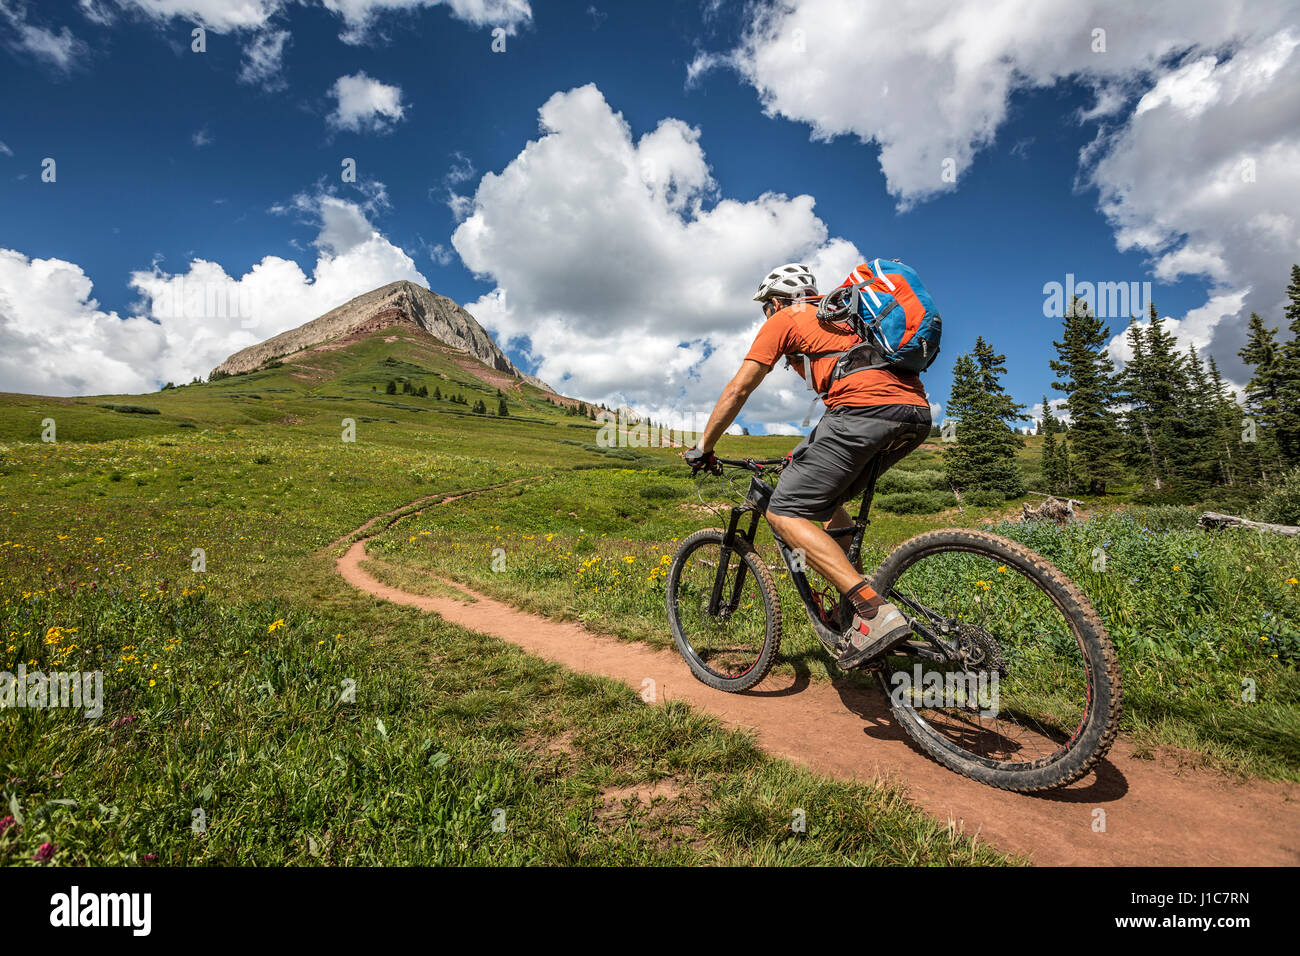 Eric Odenthal Mountainbiken auf den Pass Weg in Richtung Ingenieur Mountain, Colorado. Stockbild